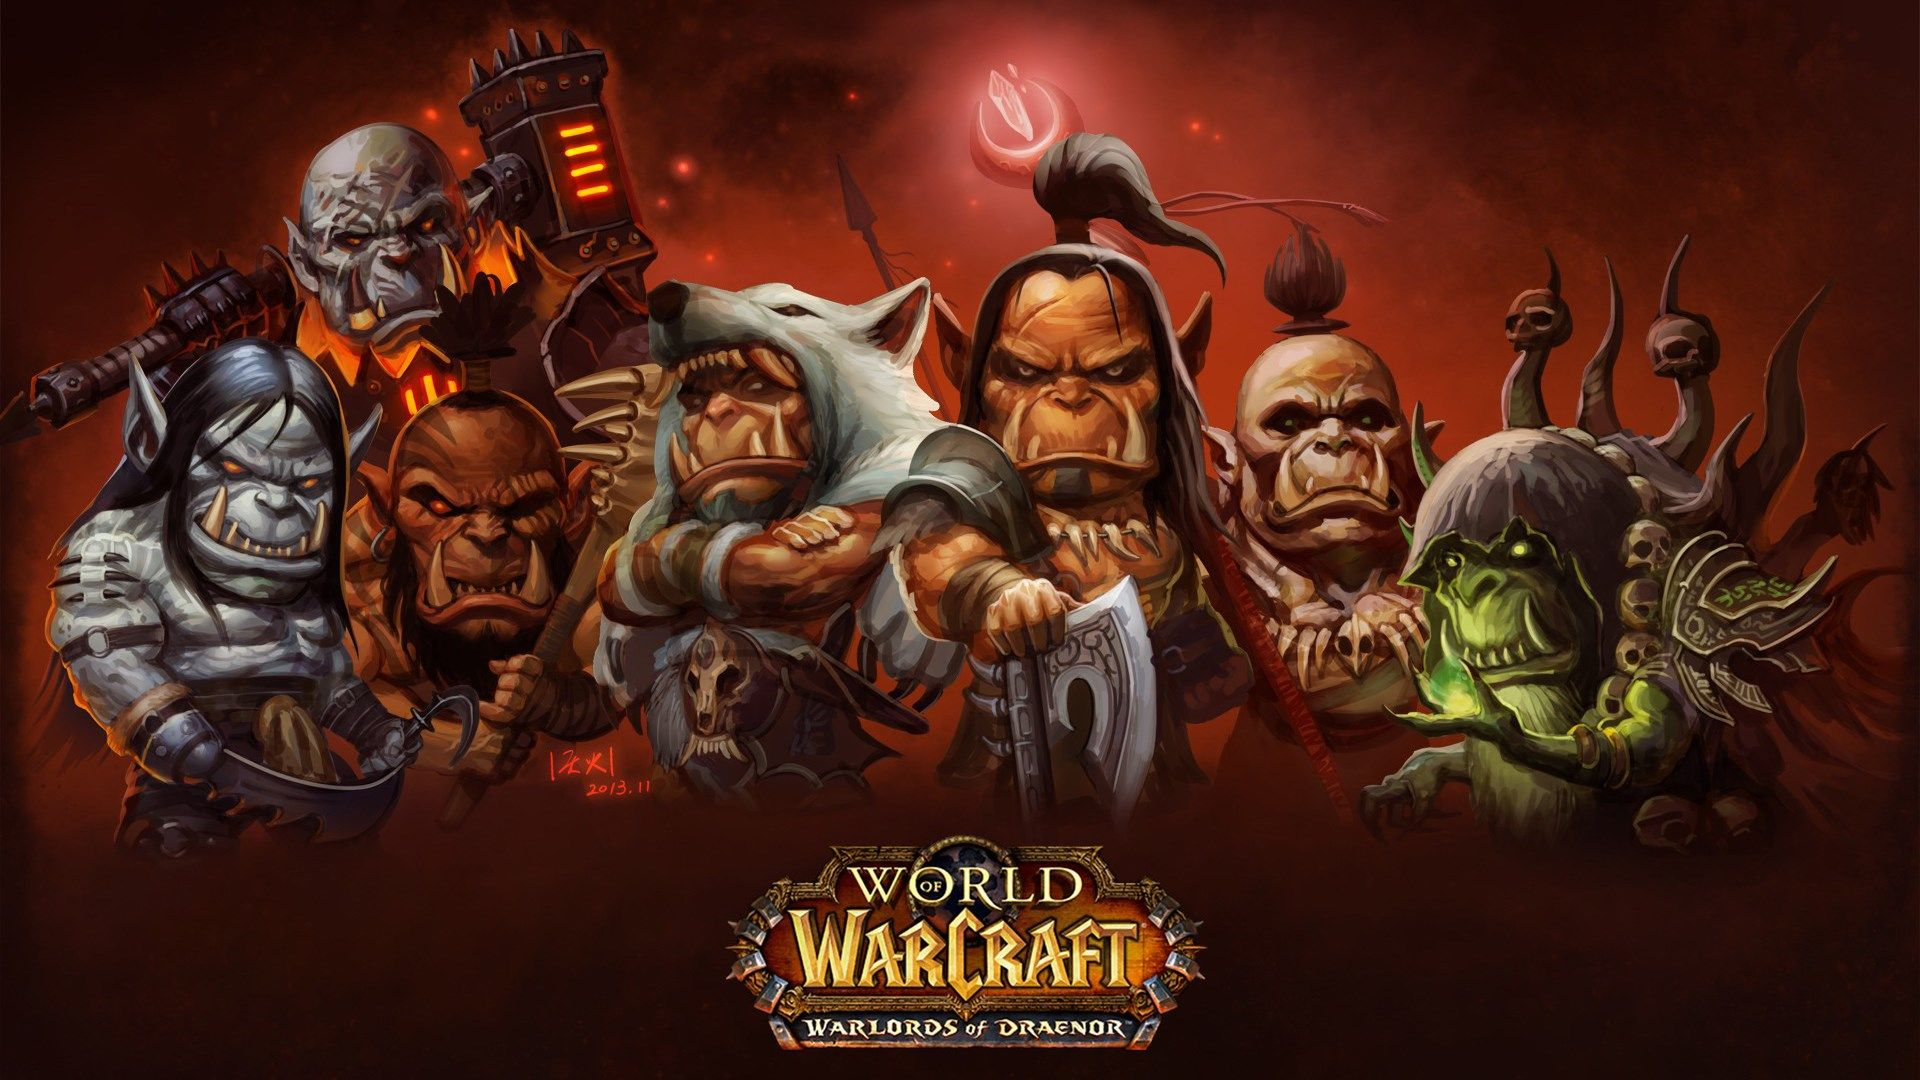 1920x1080 World Of Warcraft Warlords Of Draenor Game